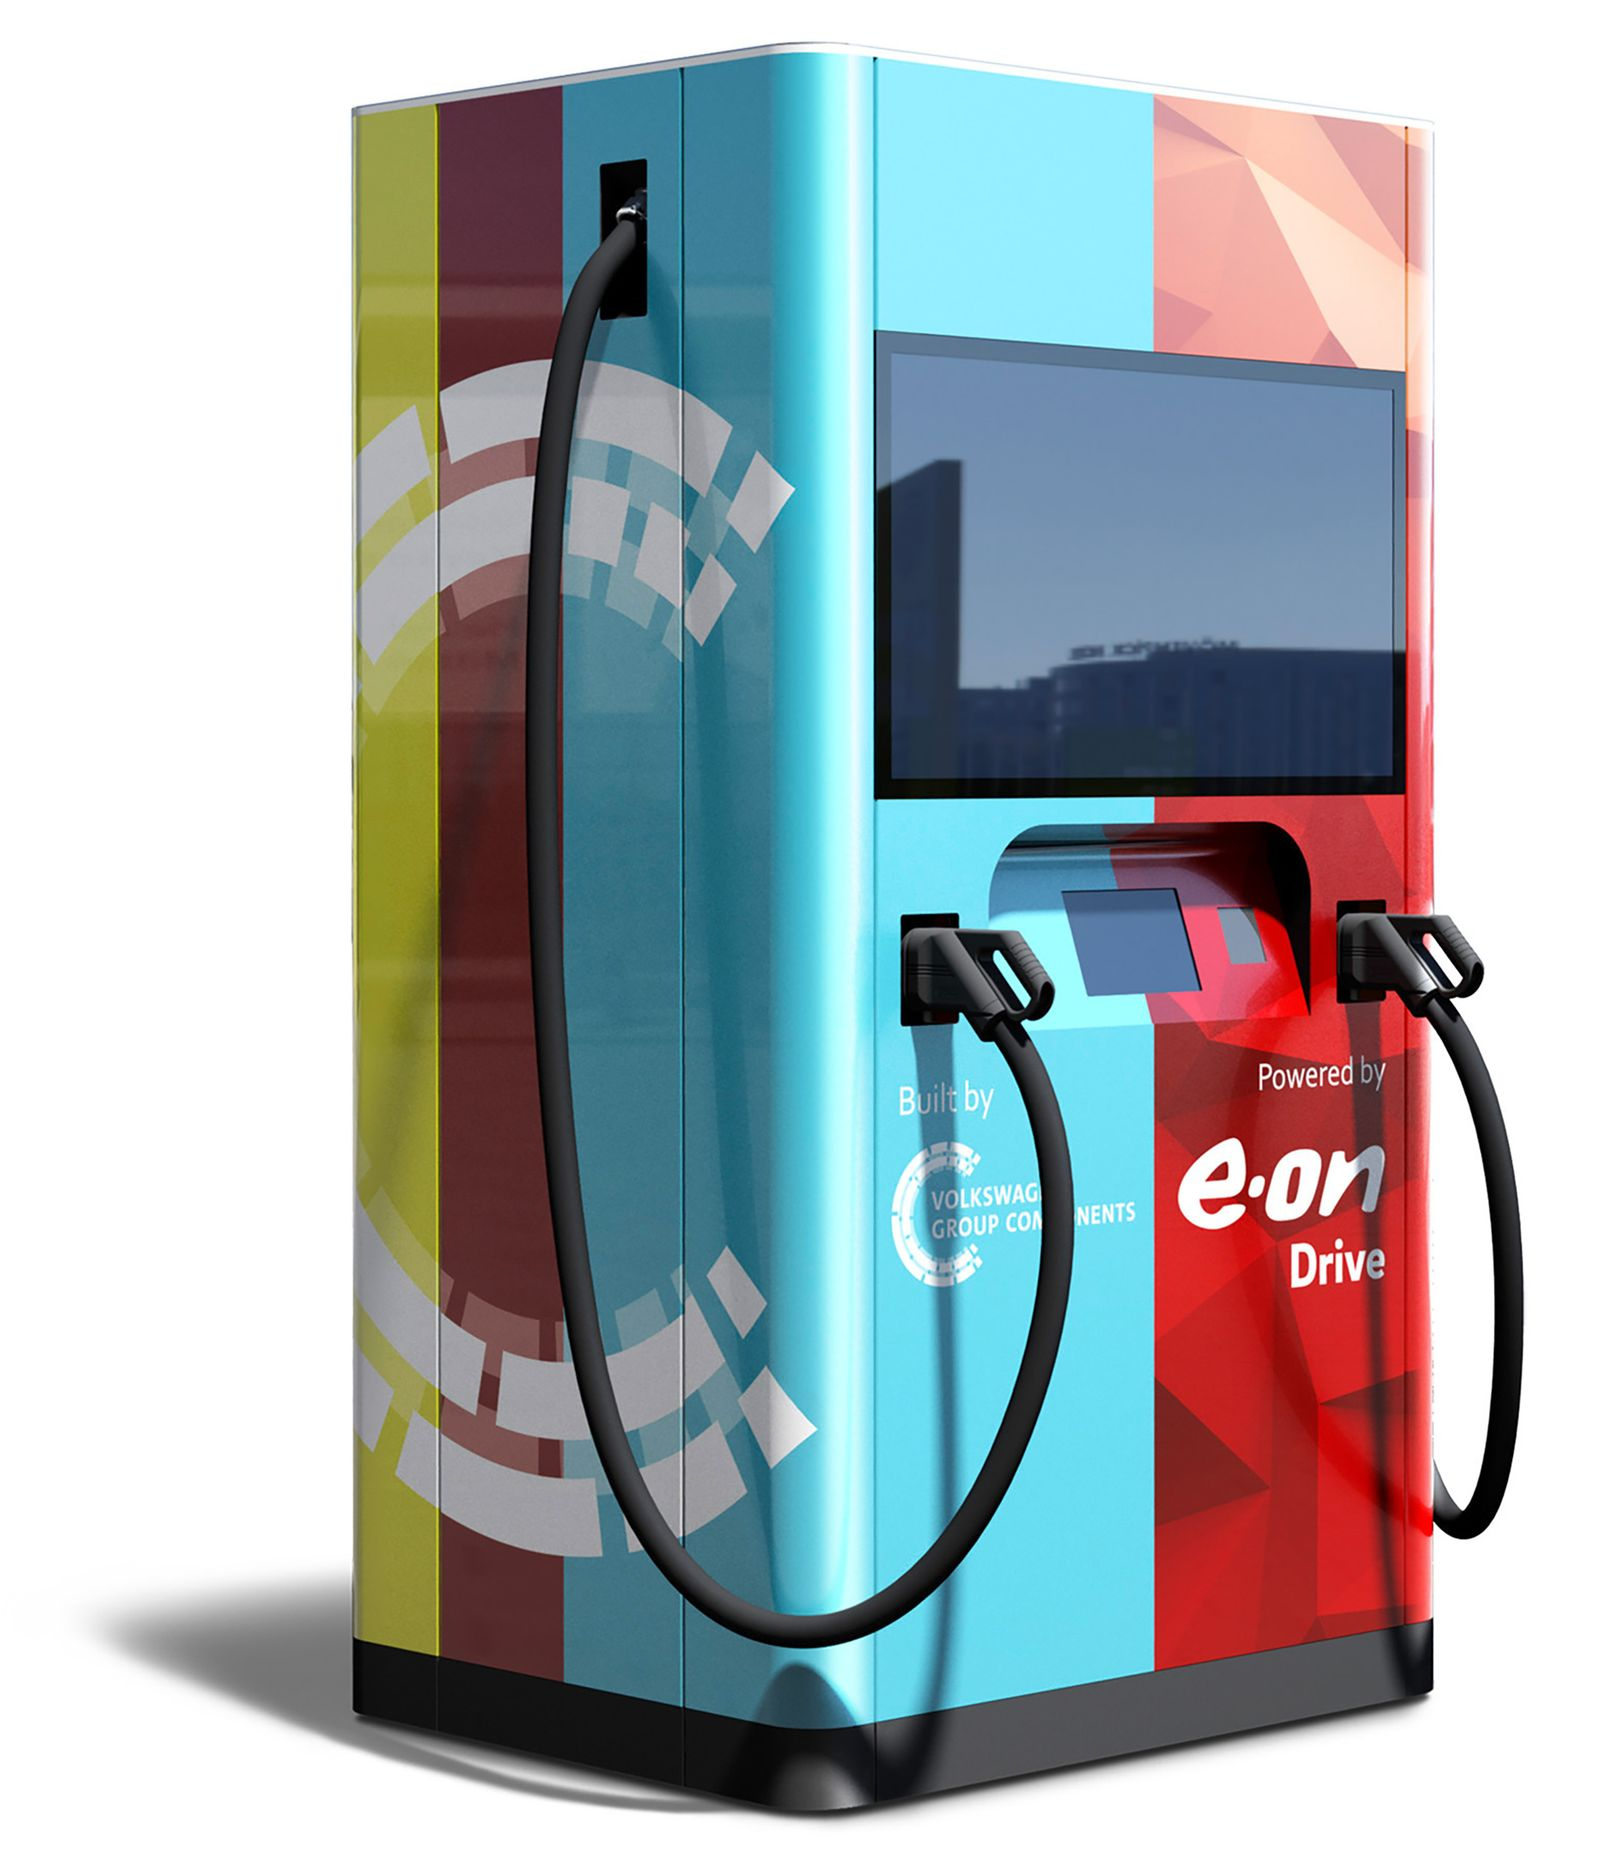 New, innovative solution for ultra-fast charging electric vehicl